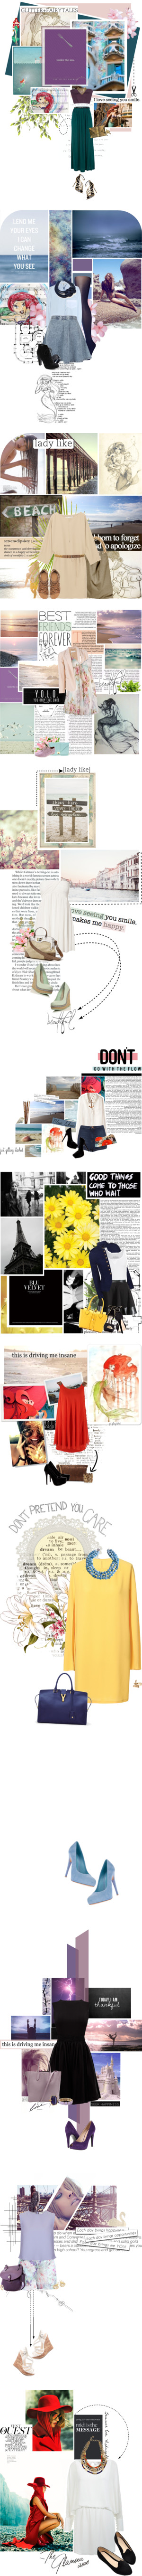 """Disney Inspired - The Little Mermaid"" by this-is-tori ❤ liked on Polyvore"